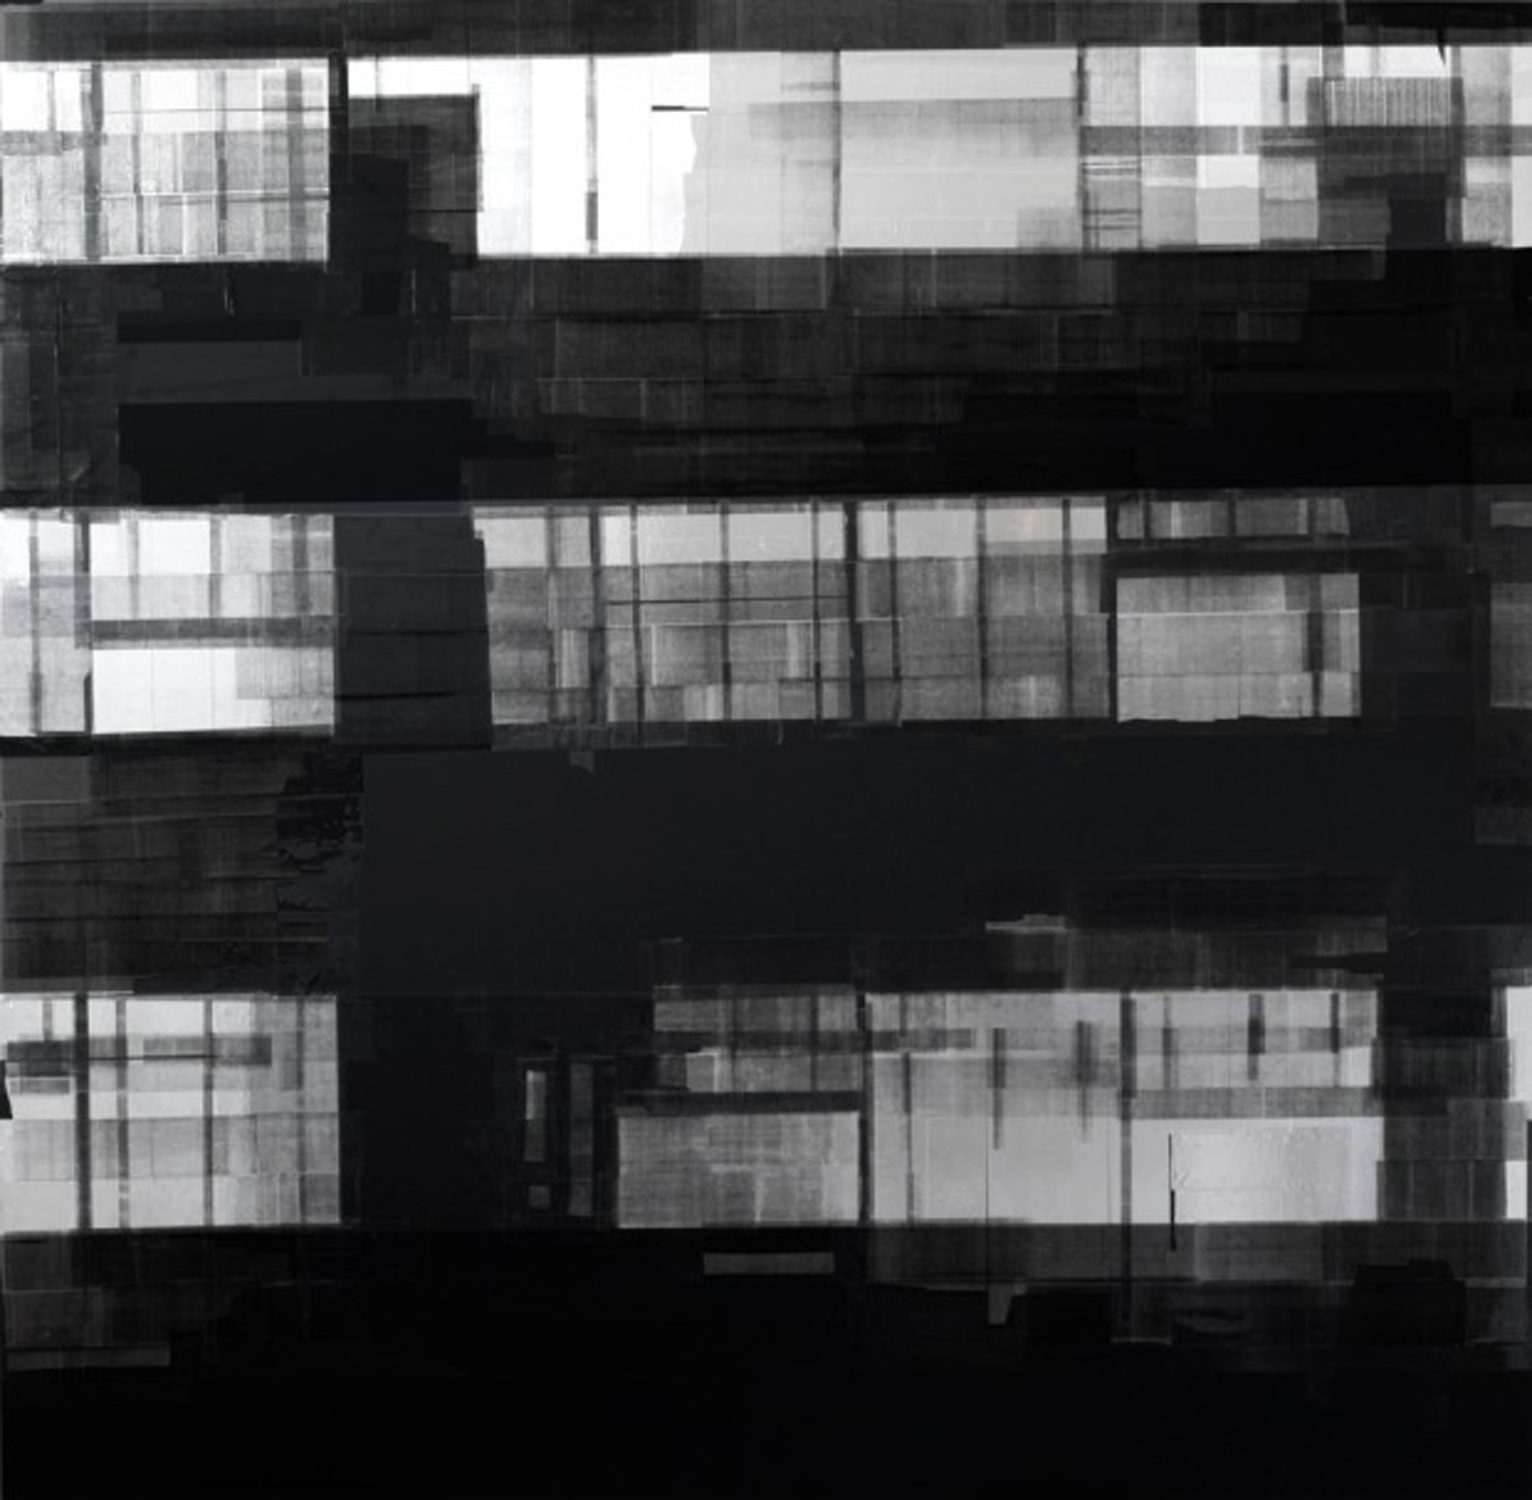 Space of Suspense 3, 47 x 48 inches / 119.4 x 122 cm, aluminum and clear tape with ink toner, board, 2017